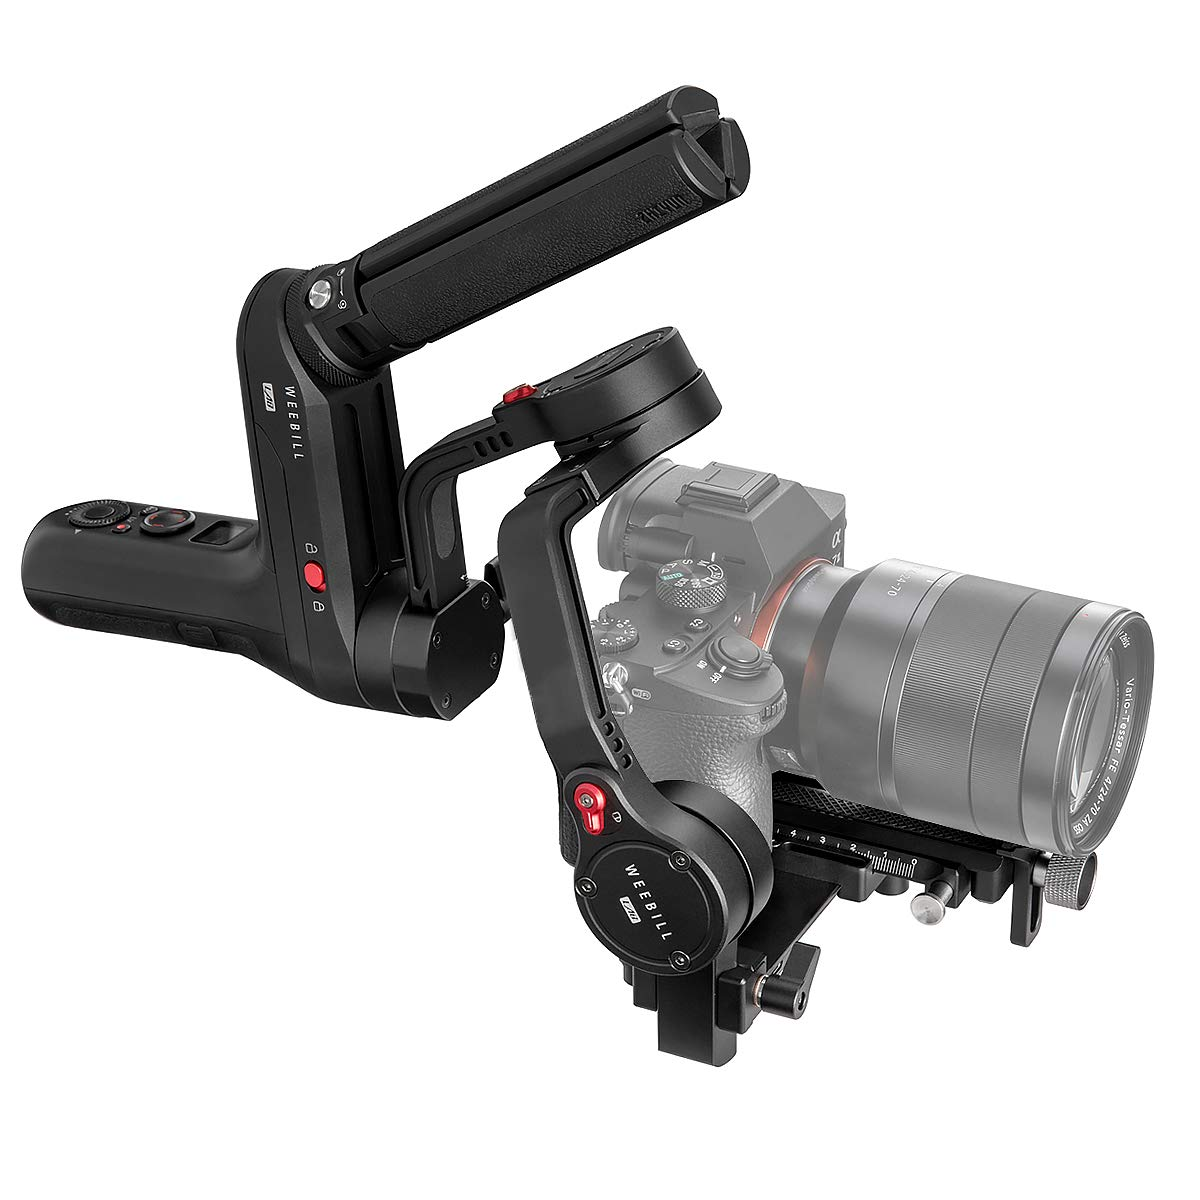 Zhiyun (Official) Weebill Lab 3-Axis Gimbal Stabilizer for Mirrorless Cameras by zhi yun